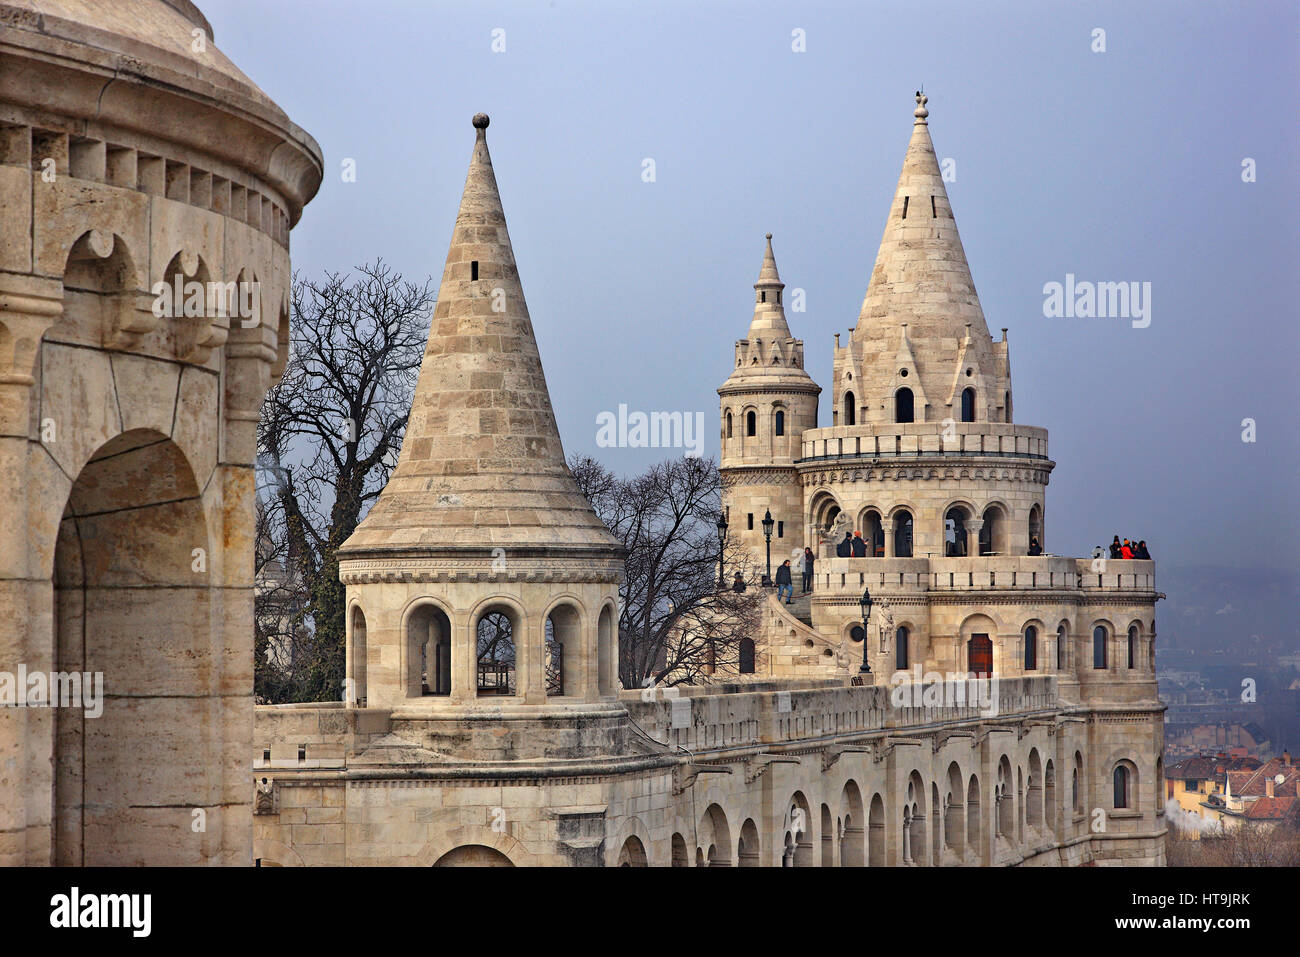 The 'Fisherman's Bastion', Castle Hill (Varhegy), Buda, Budapest, Hungary - Stock Image